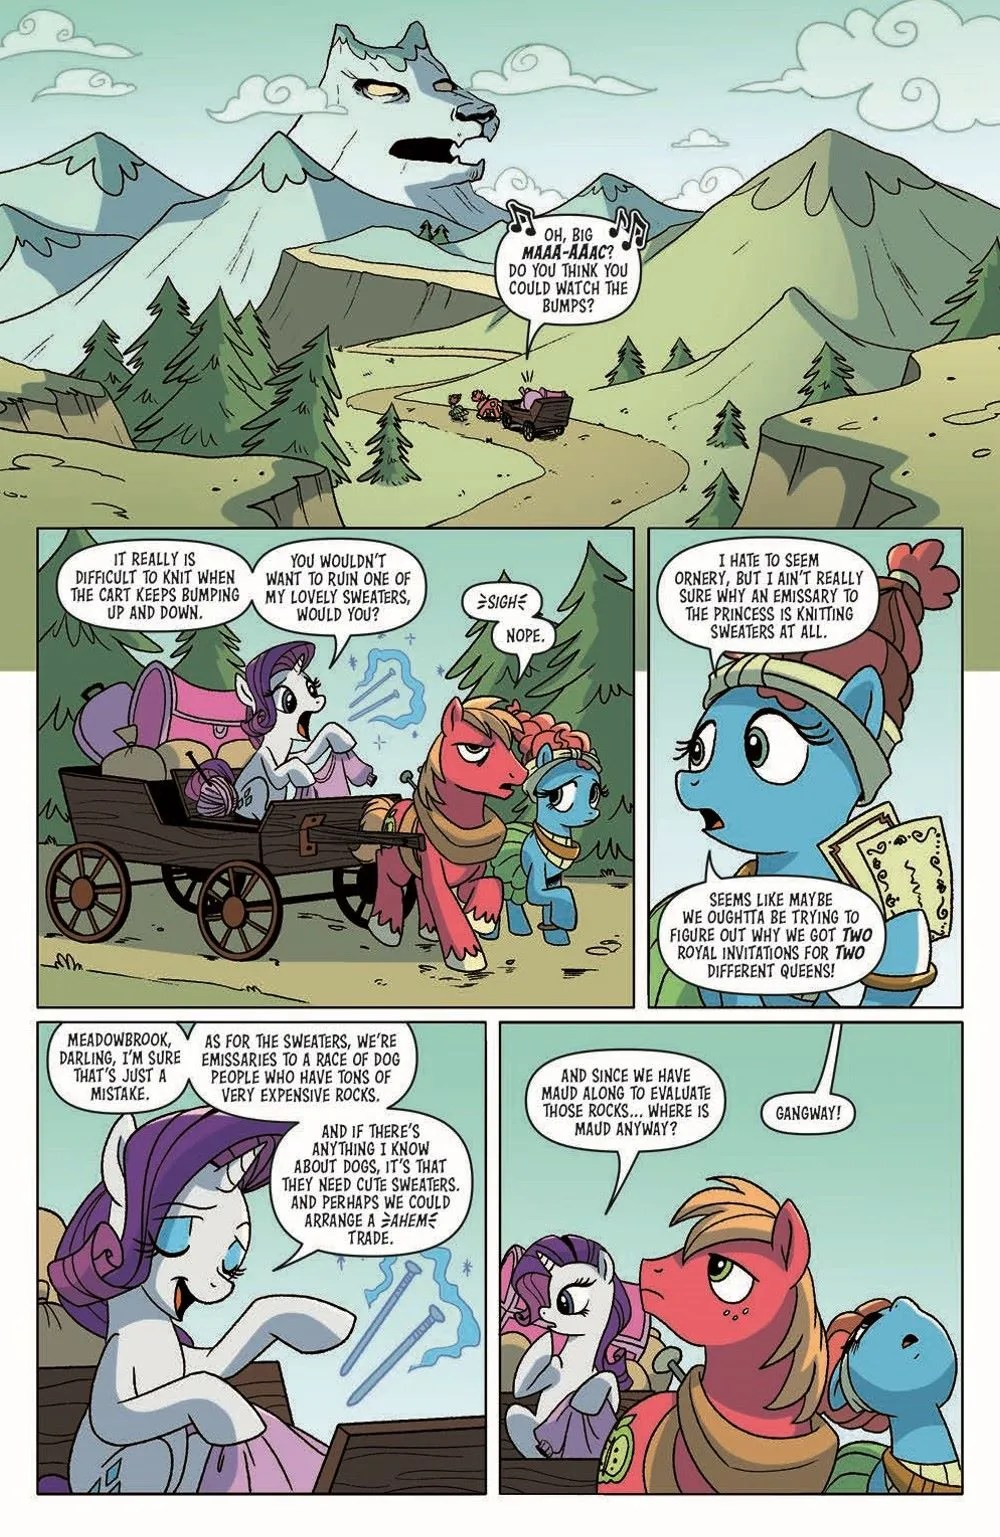 MLP_Annual2021-pr-3 ComicList Previews: MY LITTLE PONY FRIENDSHIP IS MAGIC 2021 ANNUAL